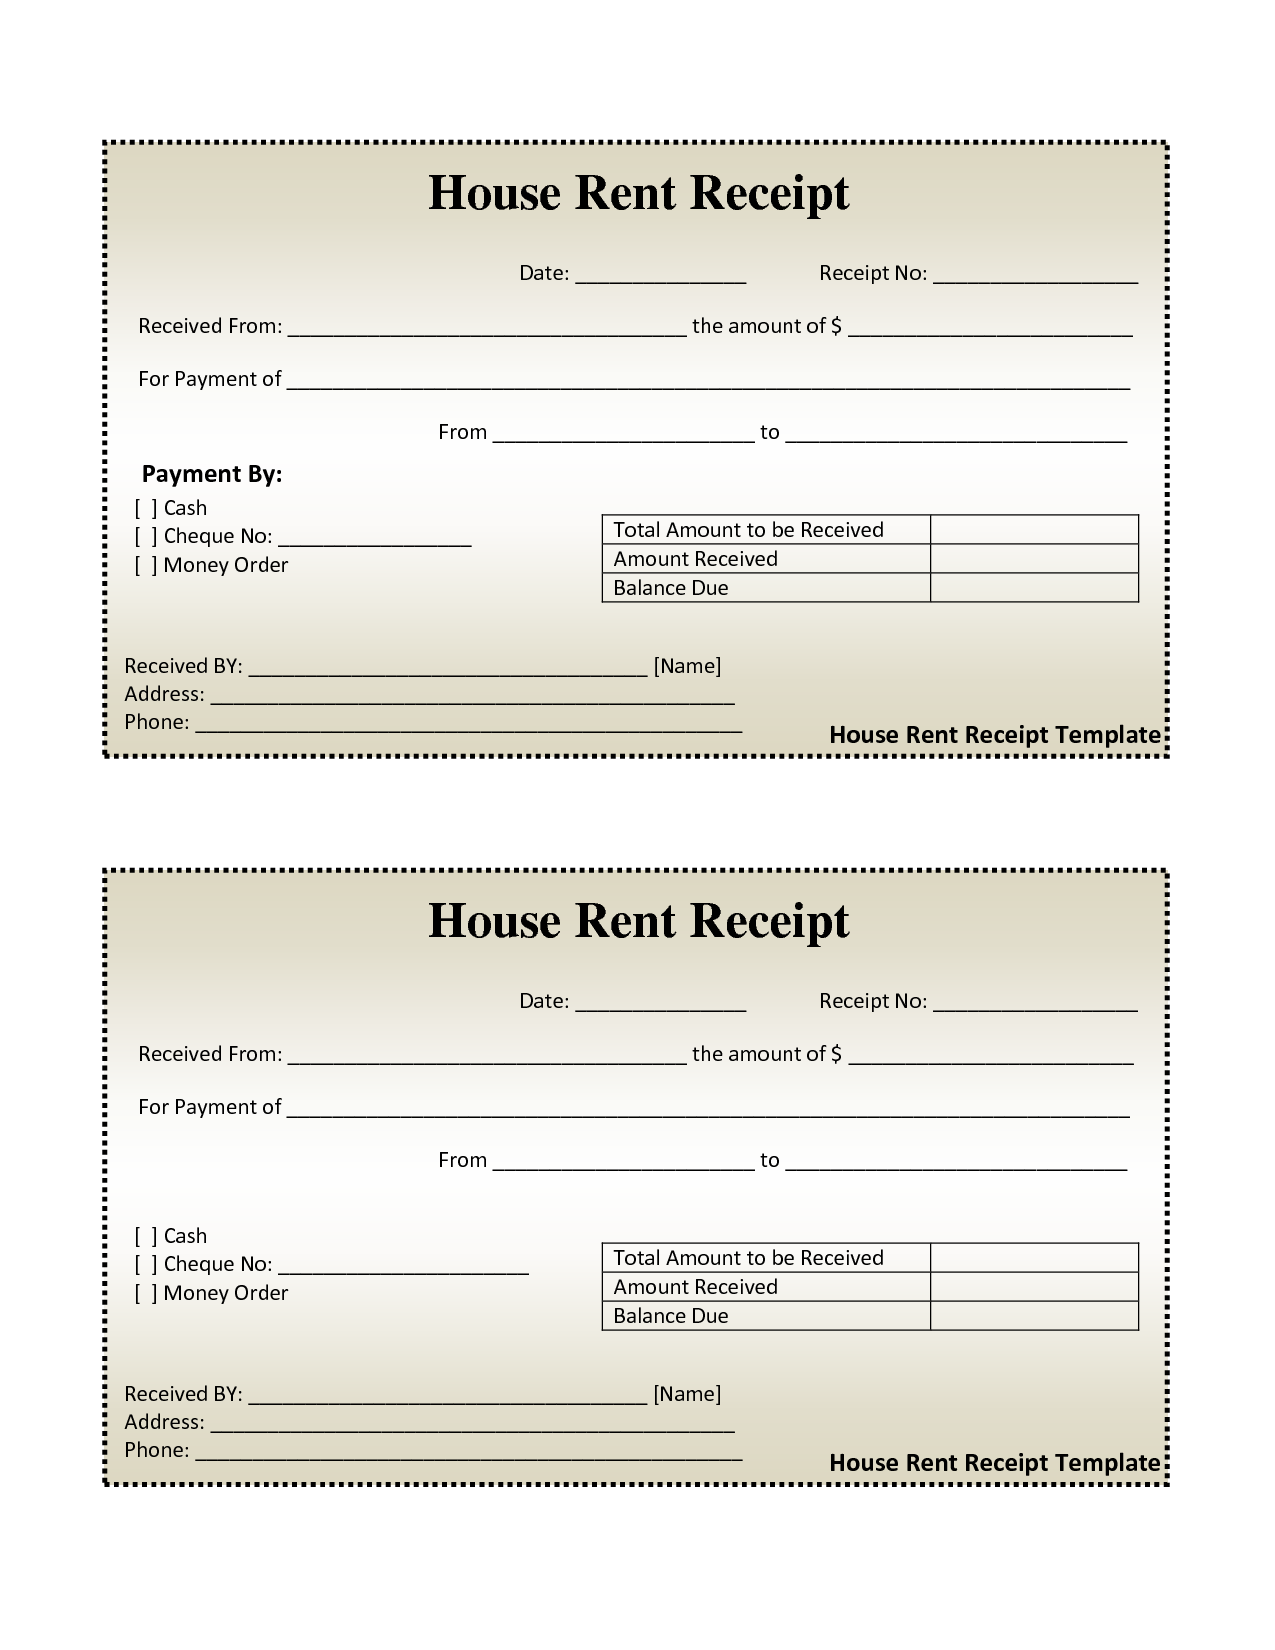 Nice Free House Rental Invoice | House Rent Receipt Template   DOC With House Rent Receipt Sample